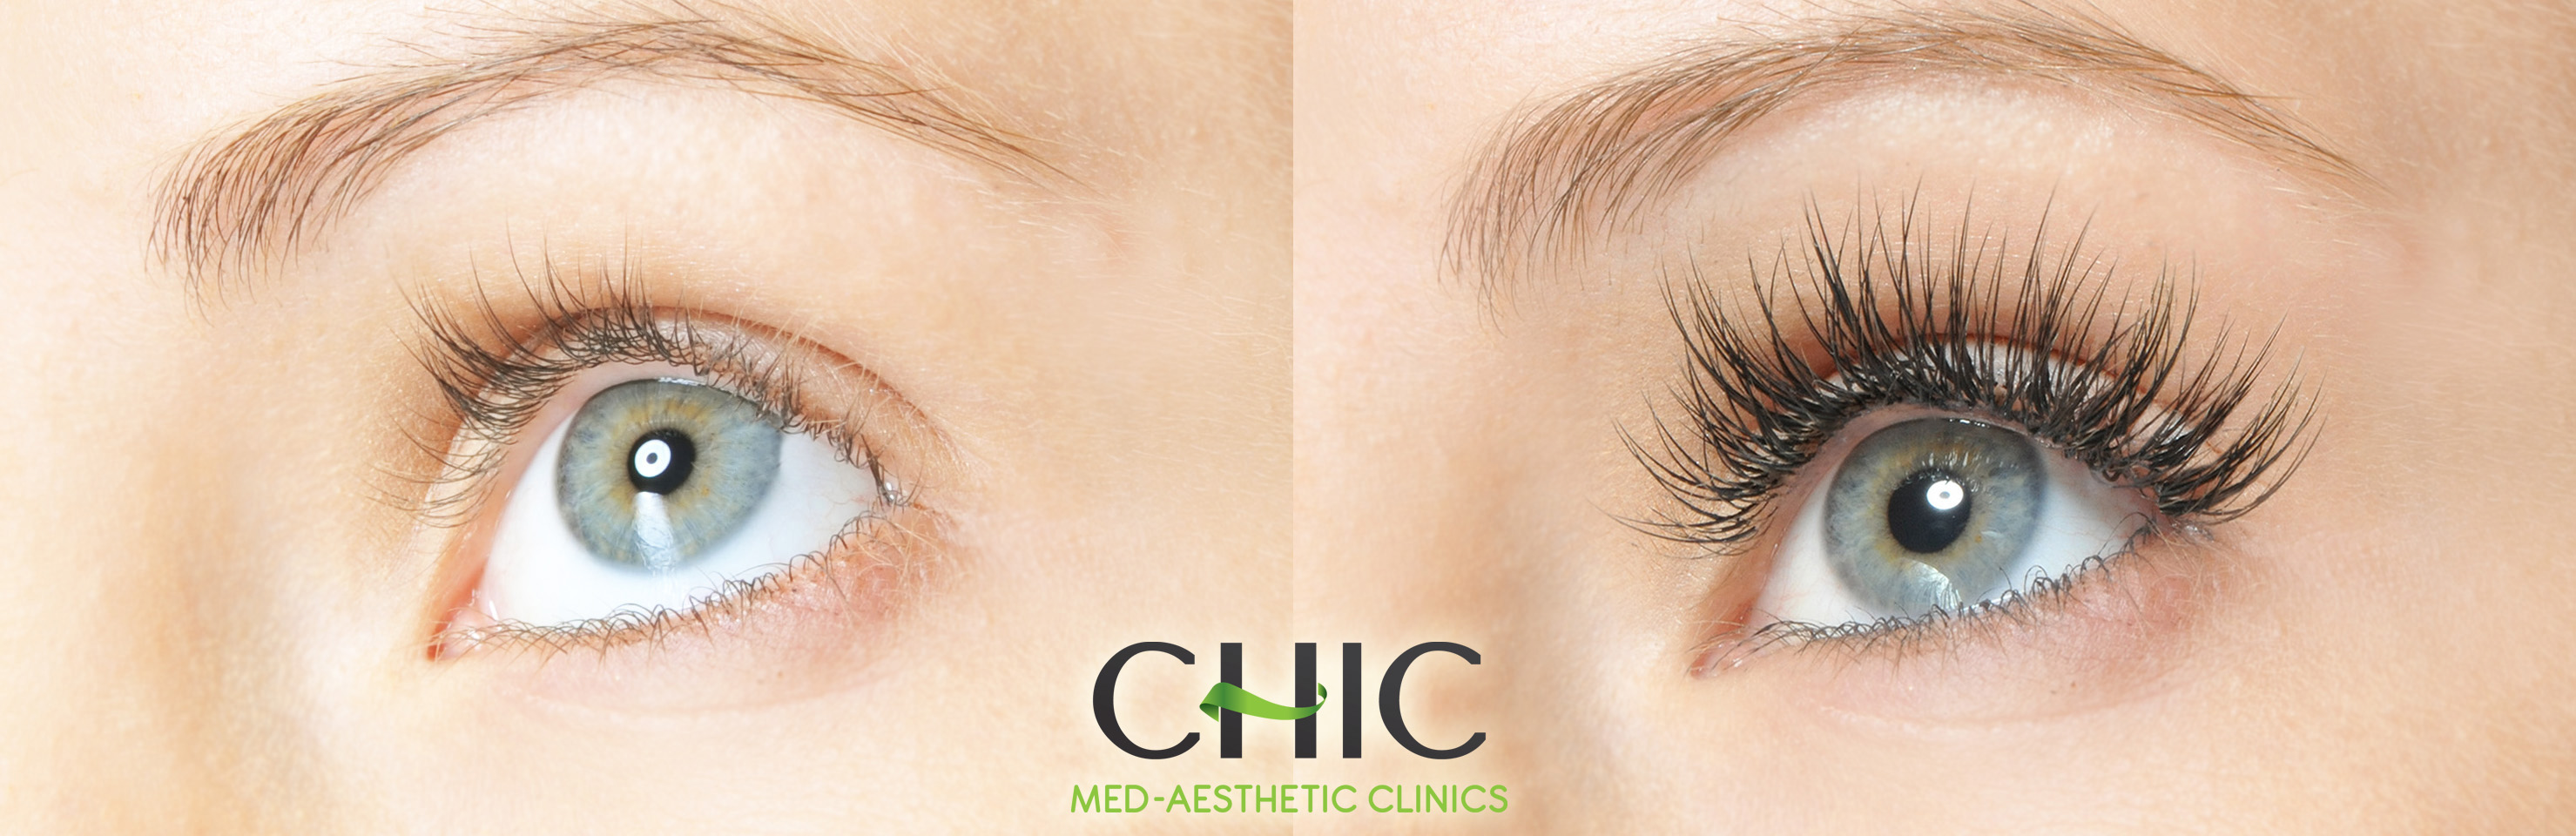 52e72a4e824 Semi-Permanent Eyelash Extensions - Chic Med-Aesthetic Clinics